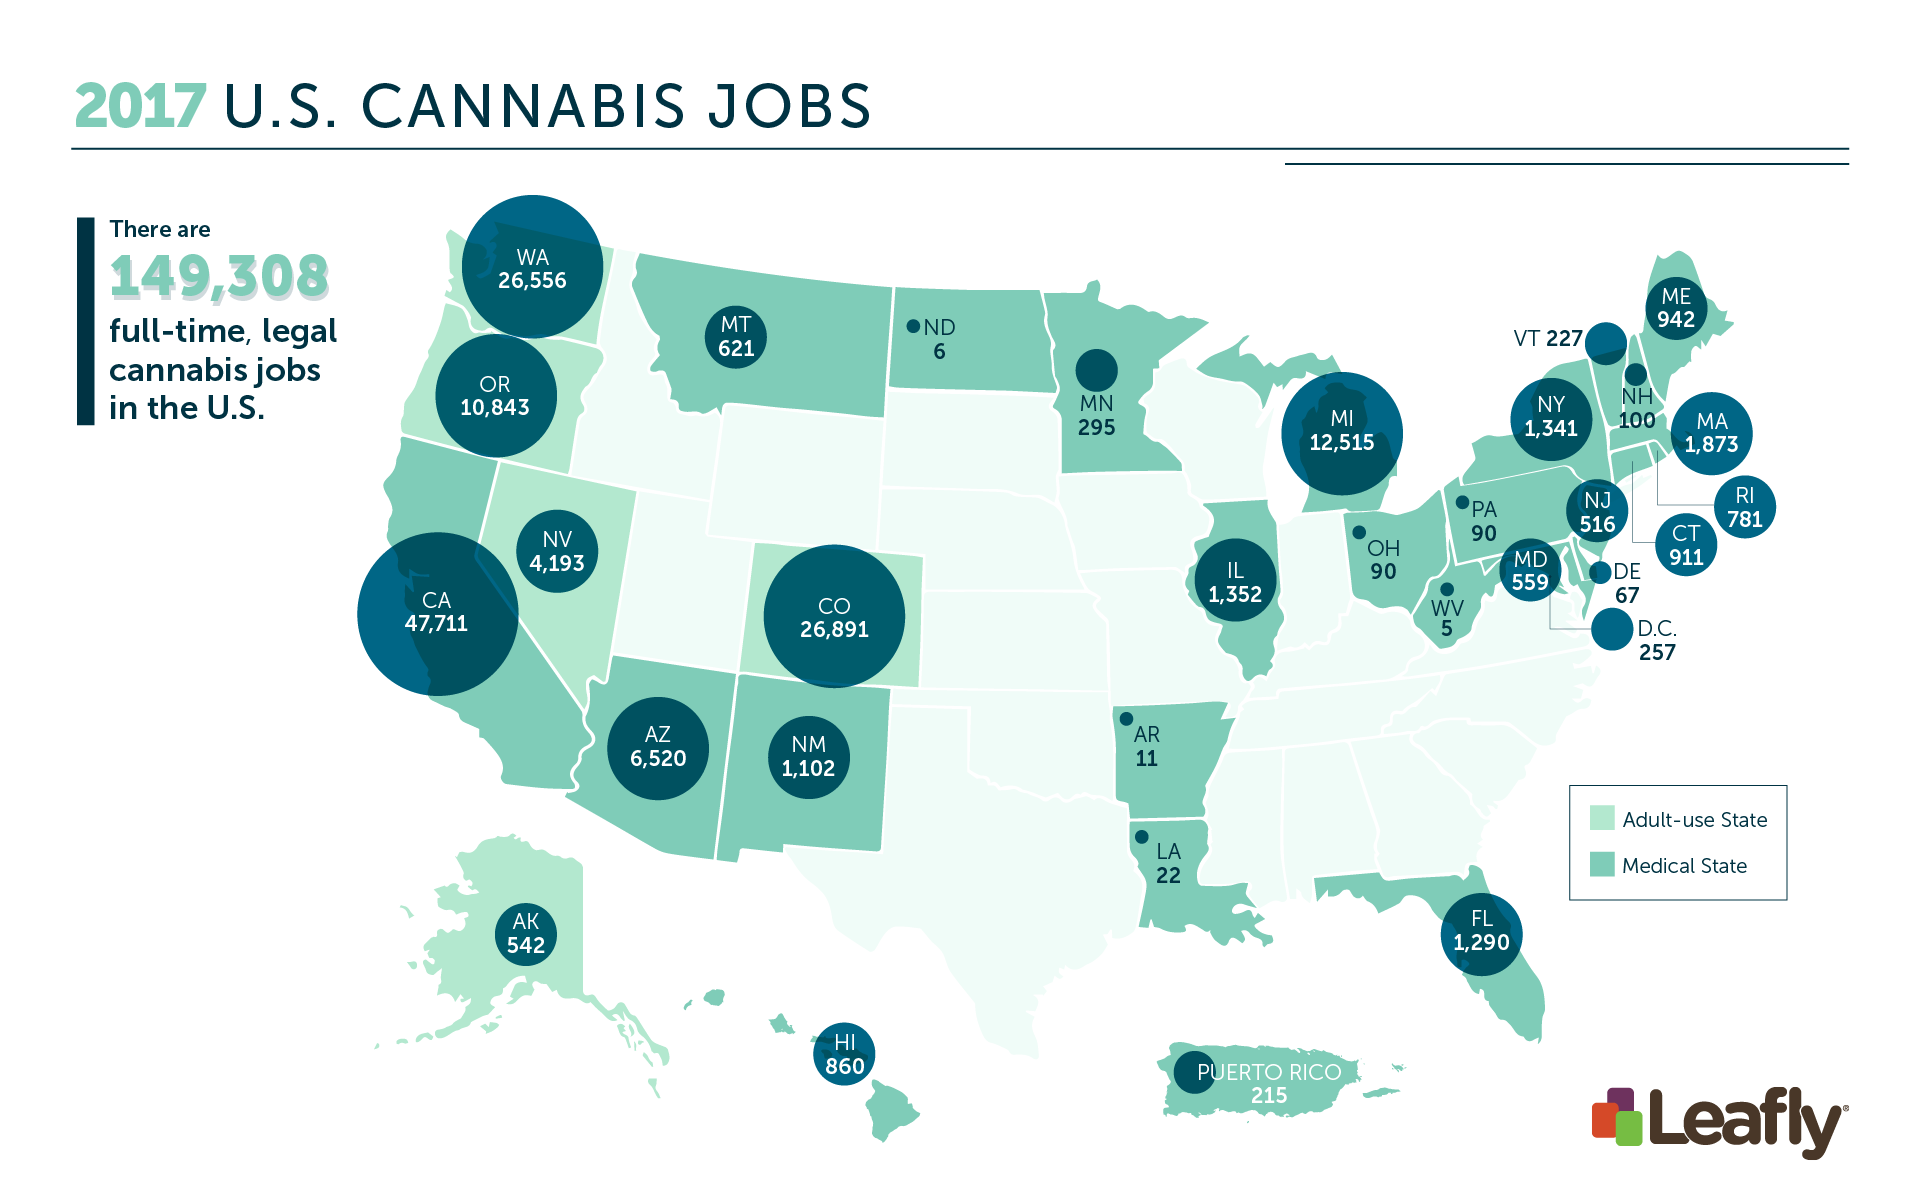 The cannabis industry employs 150K Americans in recreational weed states, medical marijuana states and up and coming recreational cannabis states